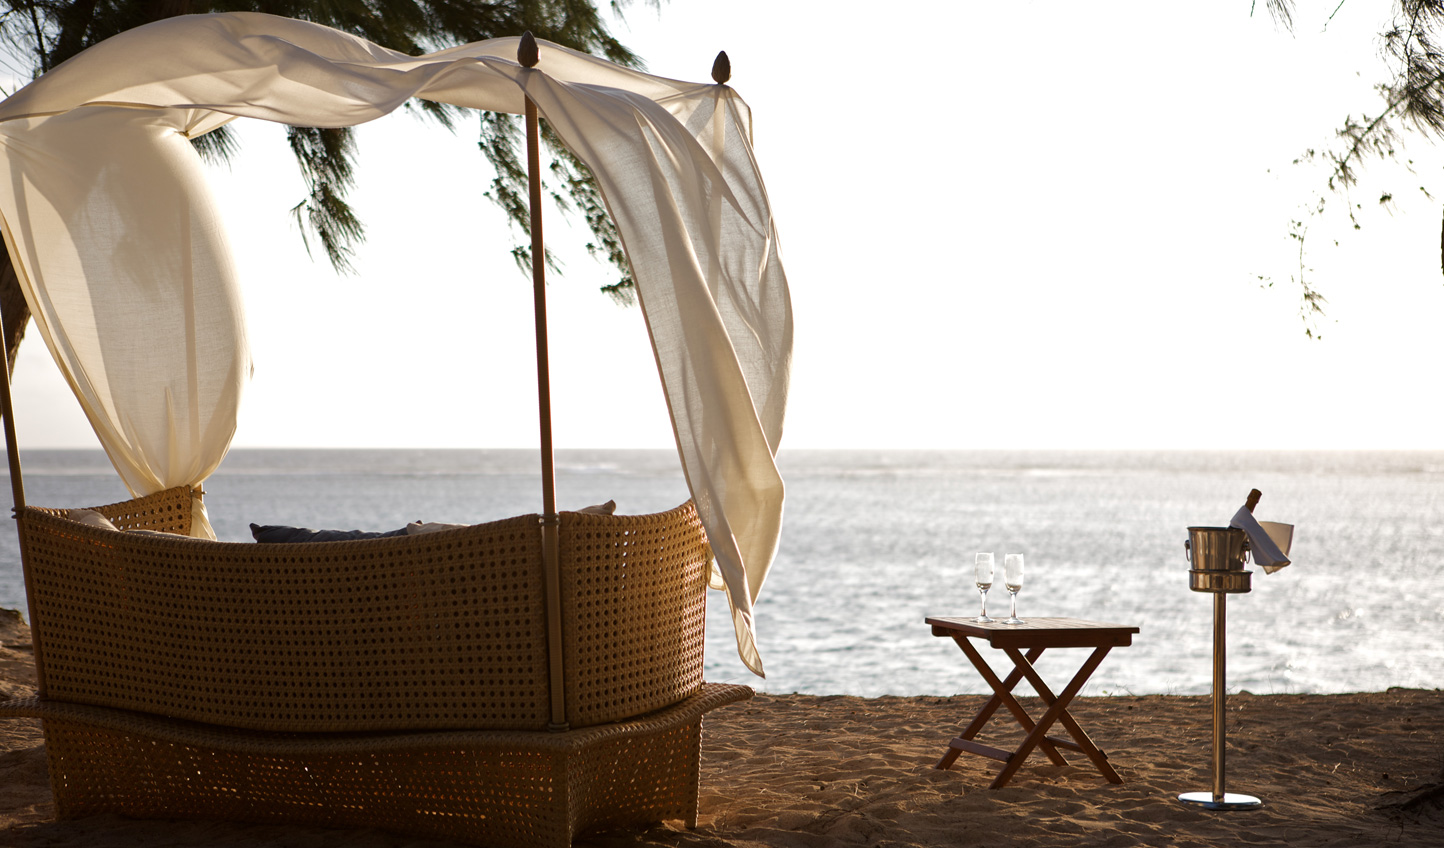 Find a quiet spot on the beach to end the day with a sundowner